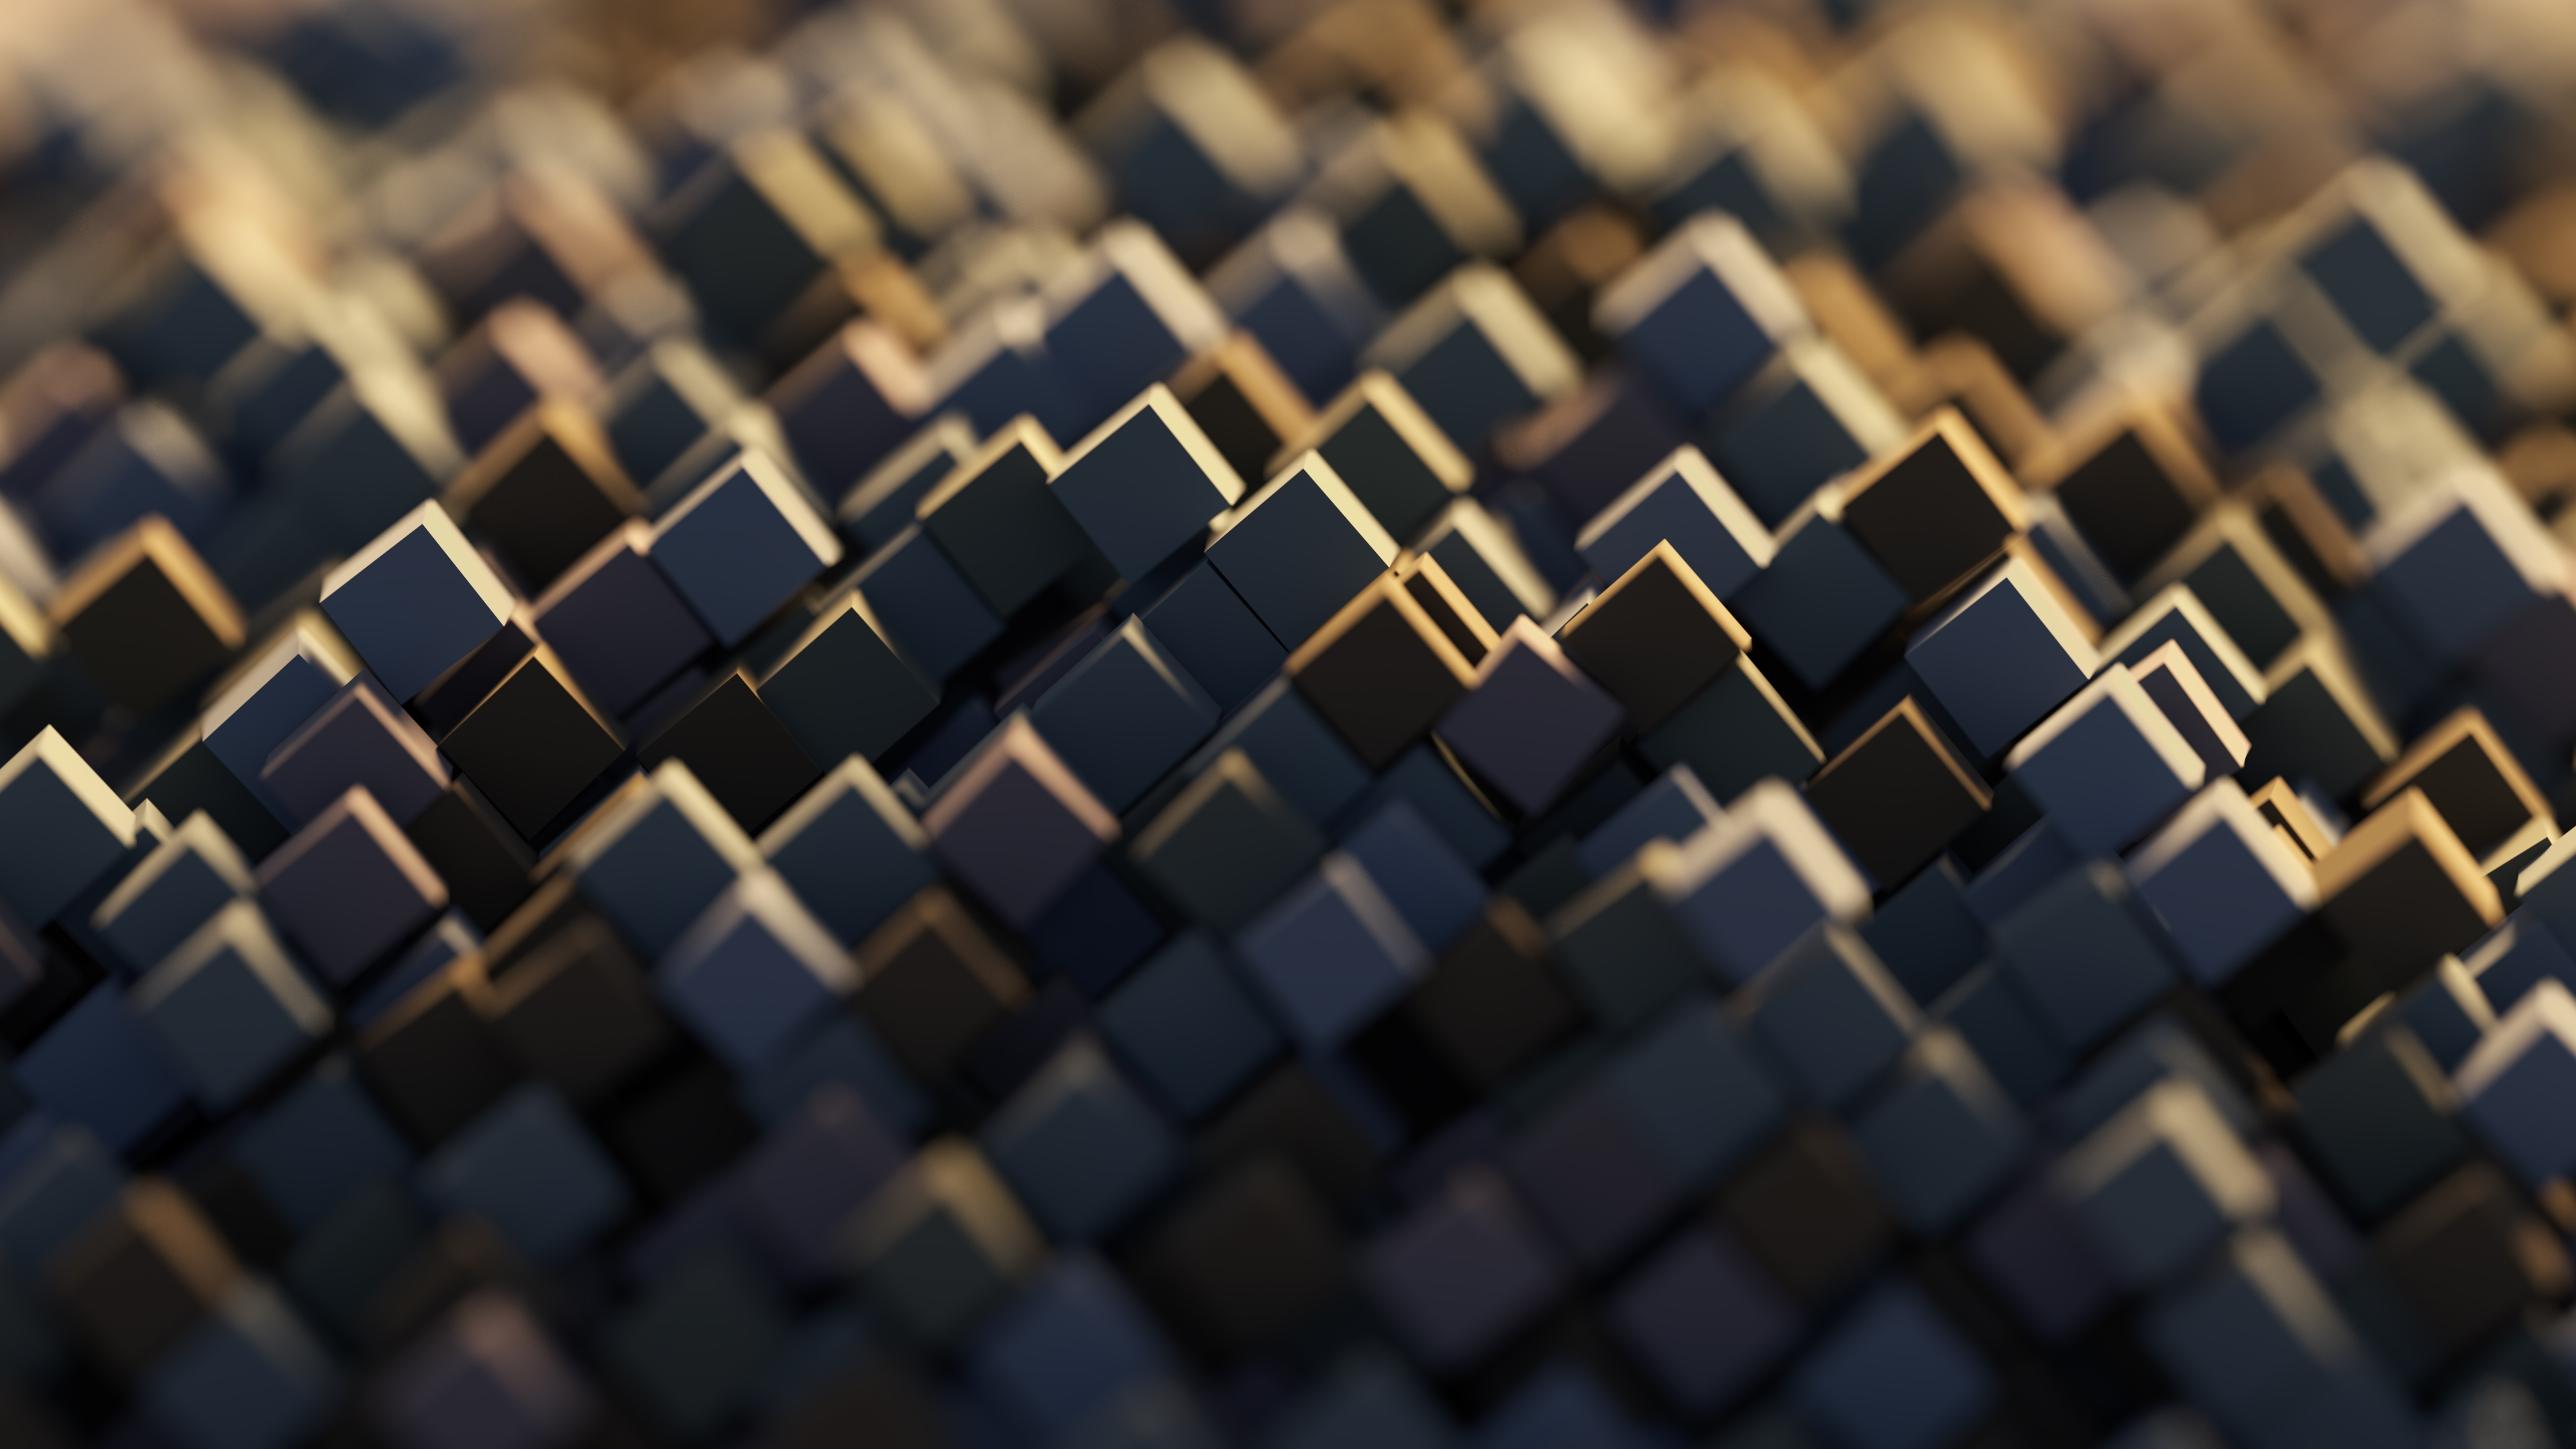 abstract 3d cubes 1539371100 - Abstract 3d Cubes - hd-wallpapers, cubes wallpapers, abstract wallpapers, 4k-wallpapers, 3d wallpapers